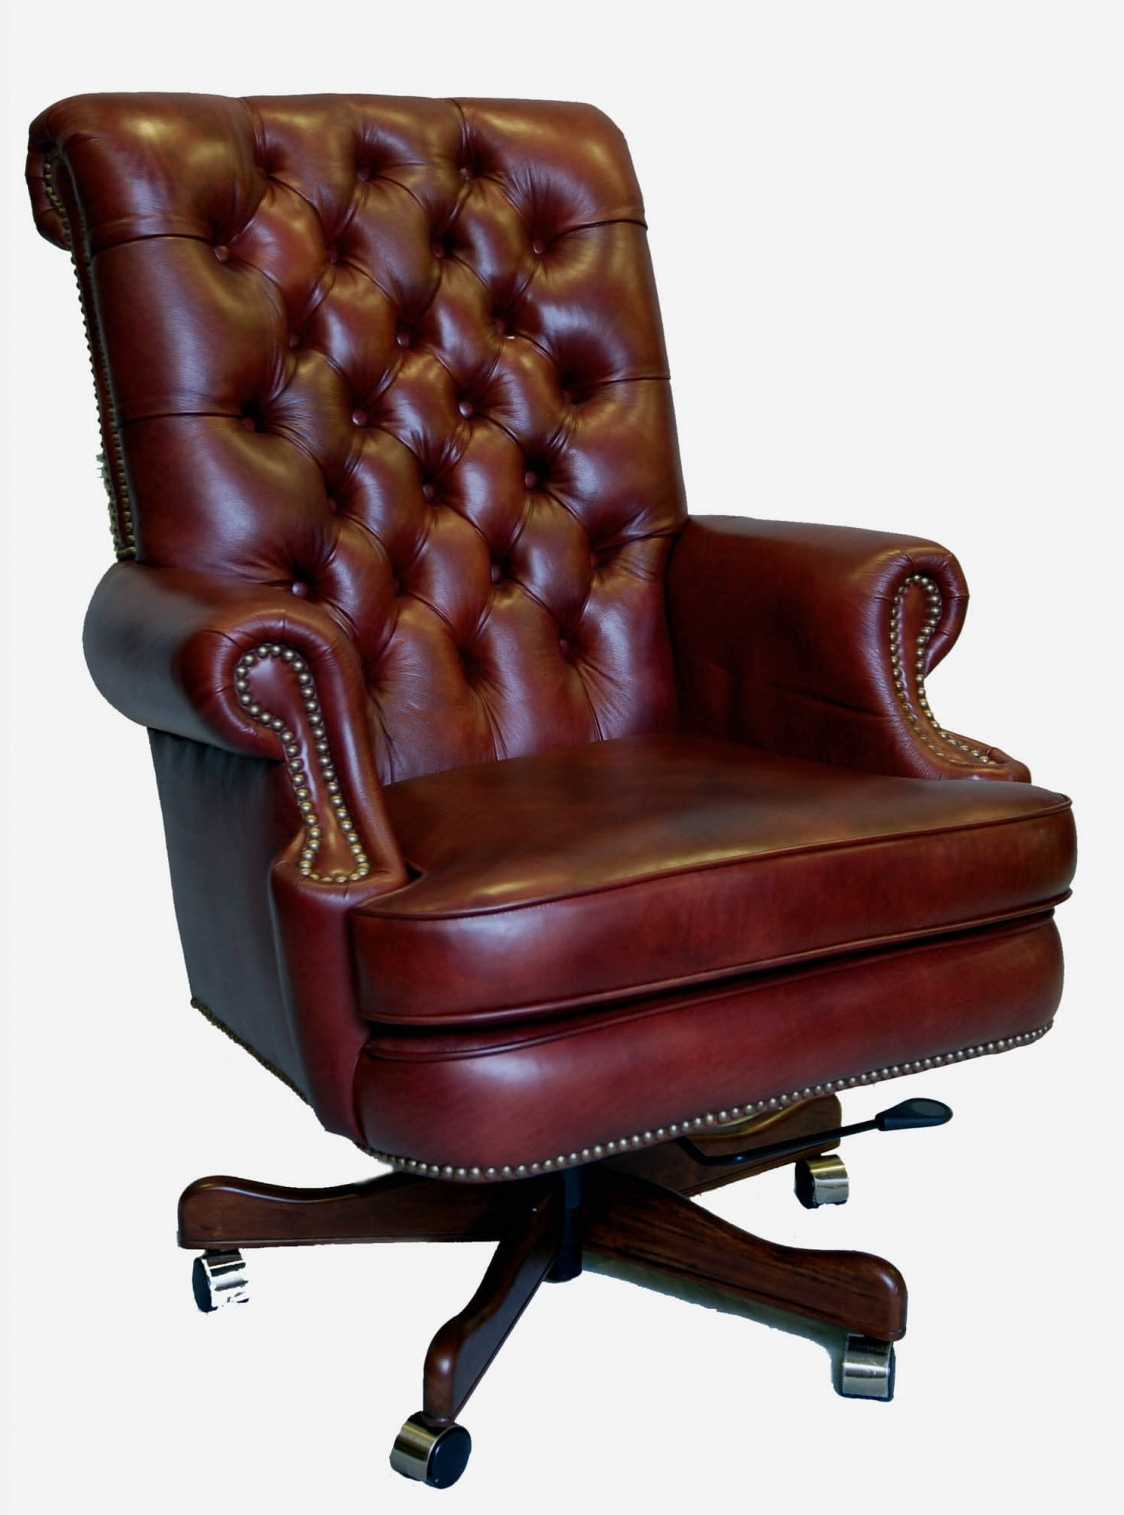 Leather Executive Office Chairs For Most Popular Brown Leather Executive Office Chair – Space Saving Desk Ideas (View 3 of 20)